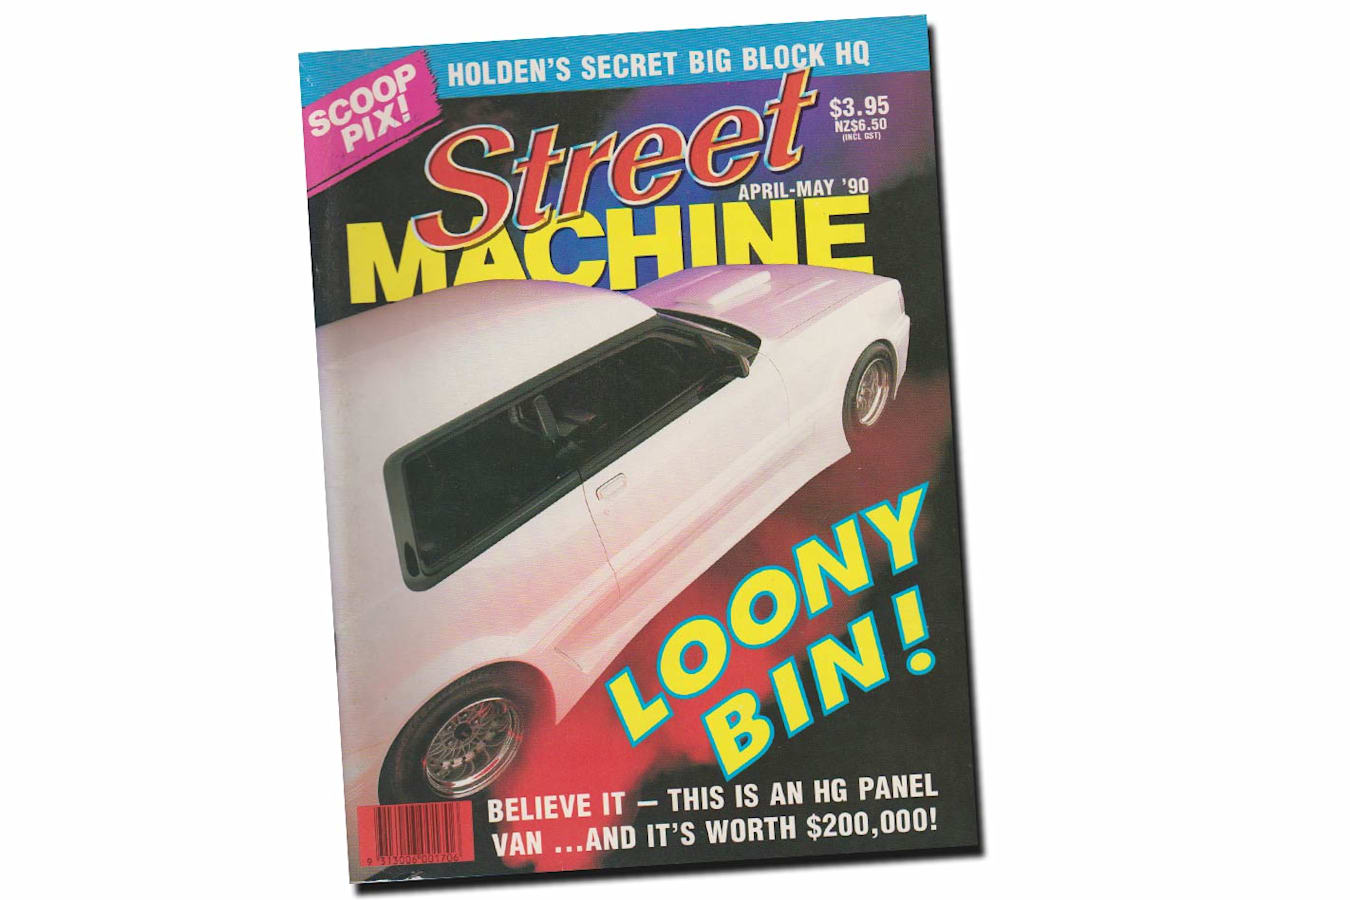 April May 1990 Street Machine cover